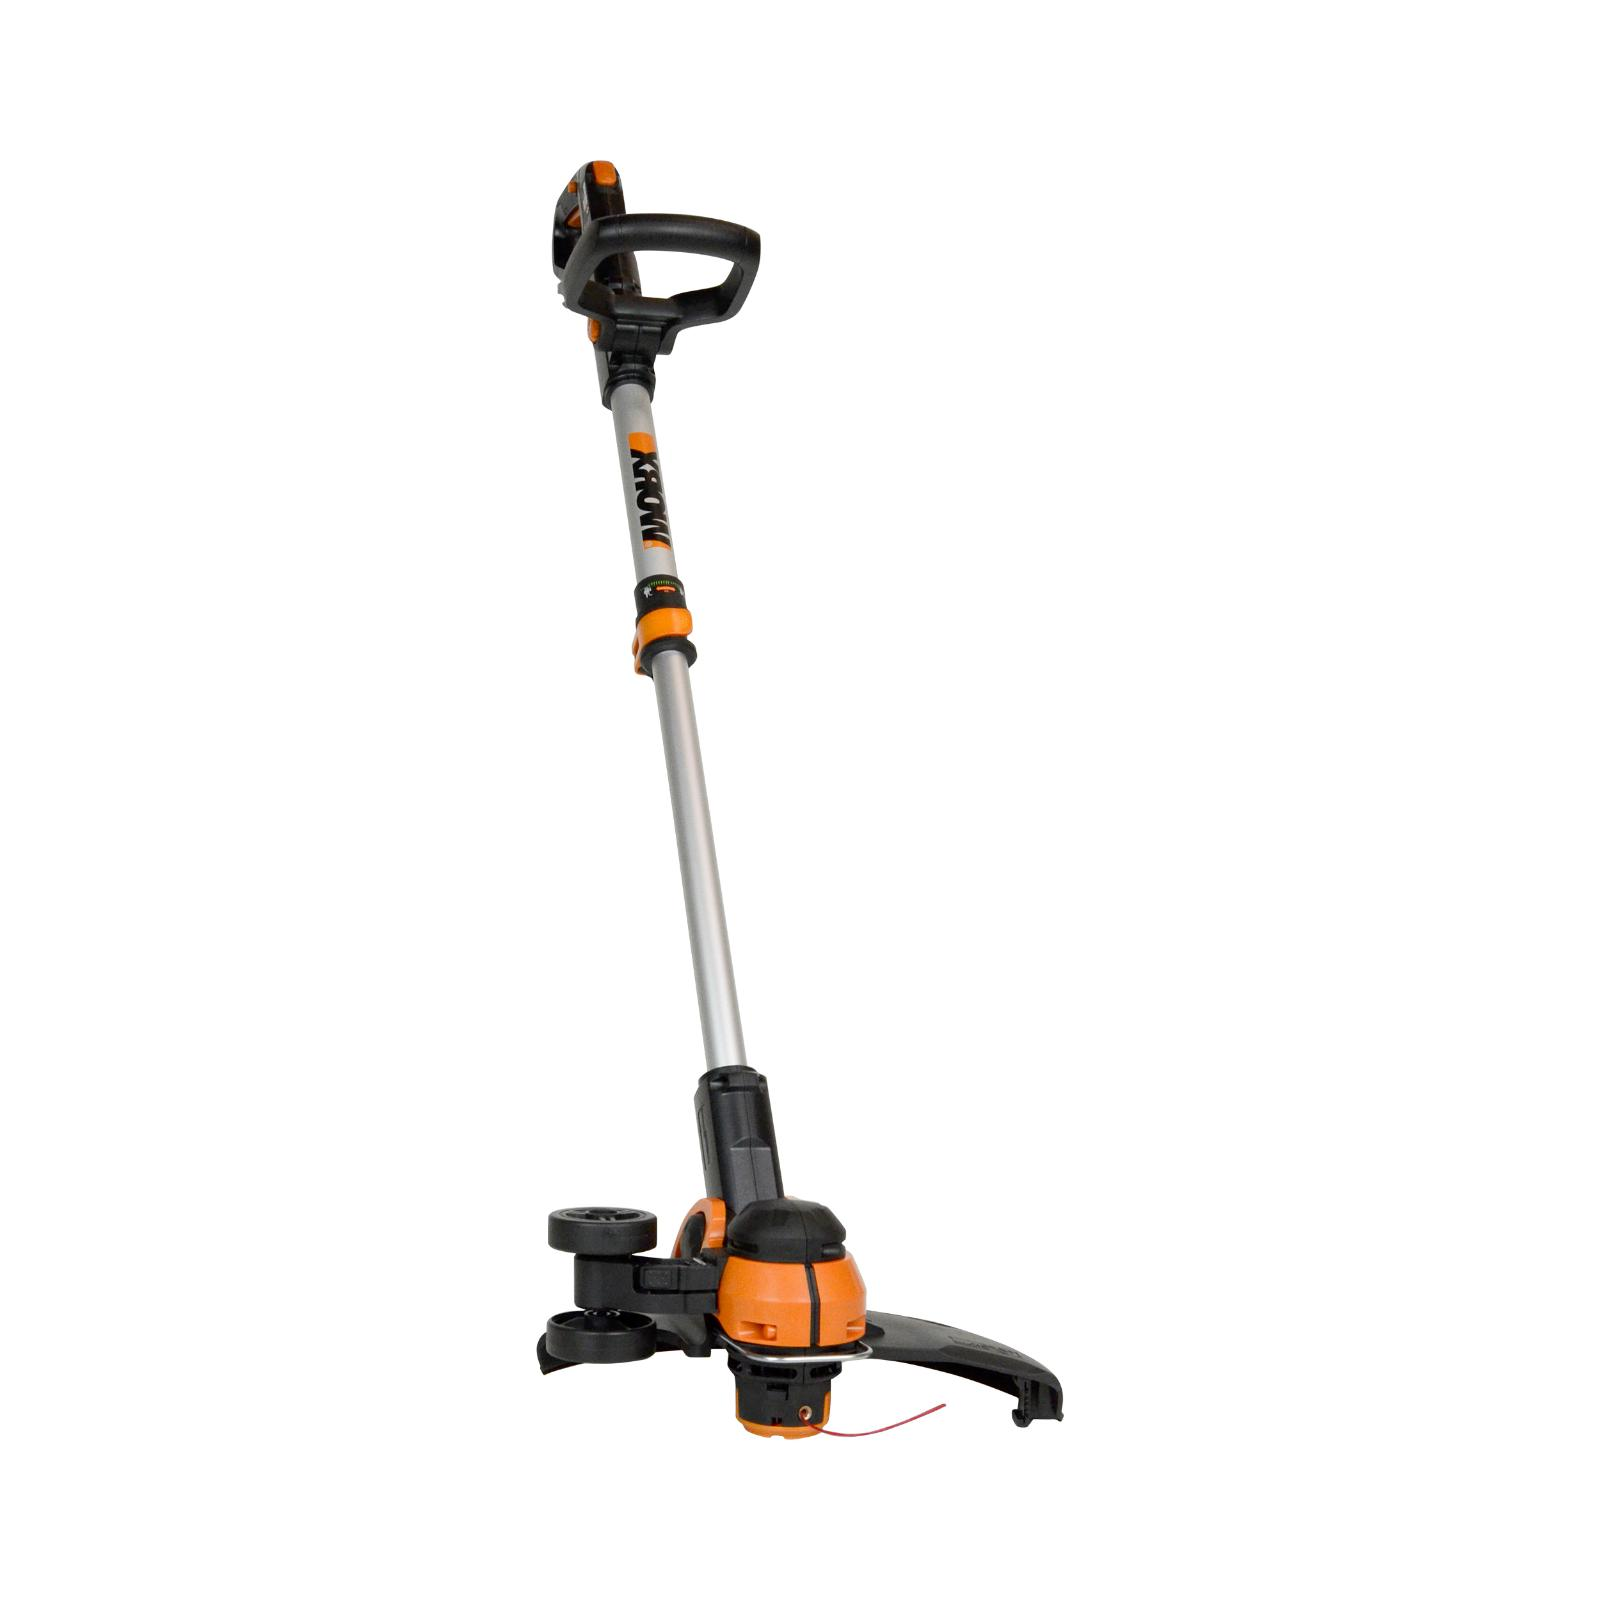 WORX WG163.9 20V Cordless Grass Trimmer/Edger with Command